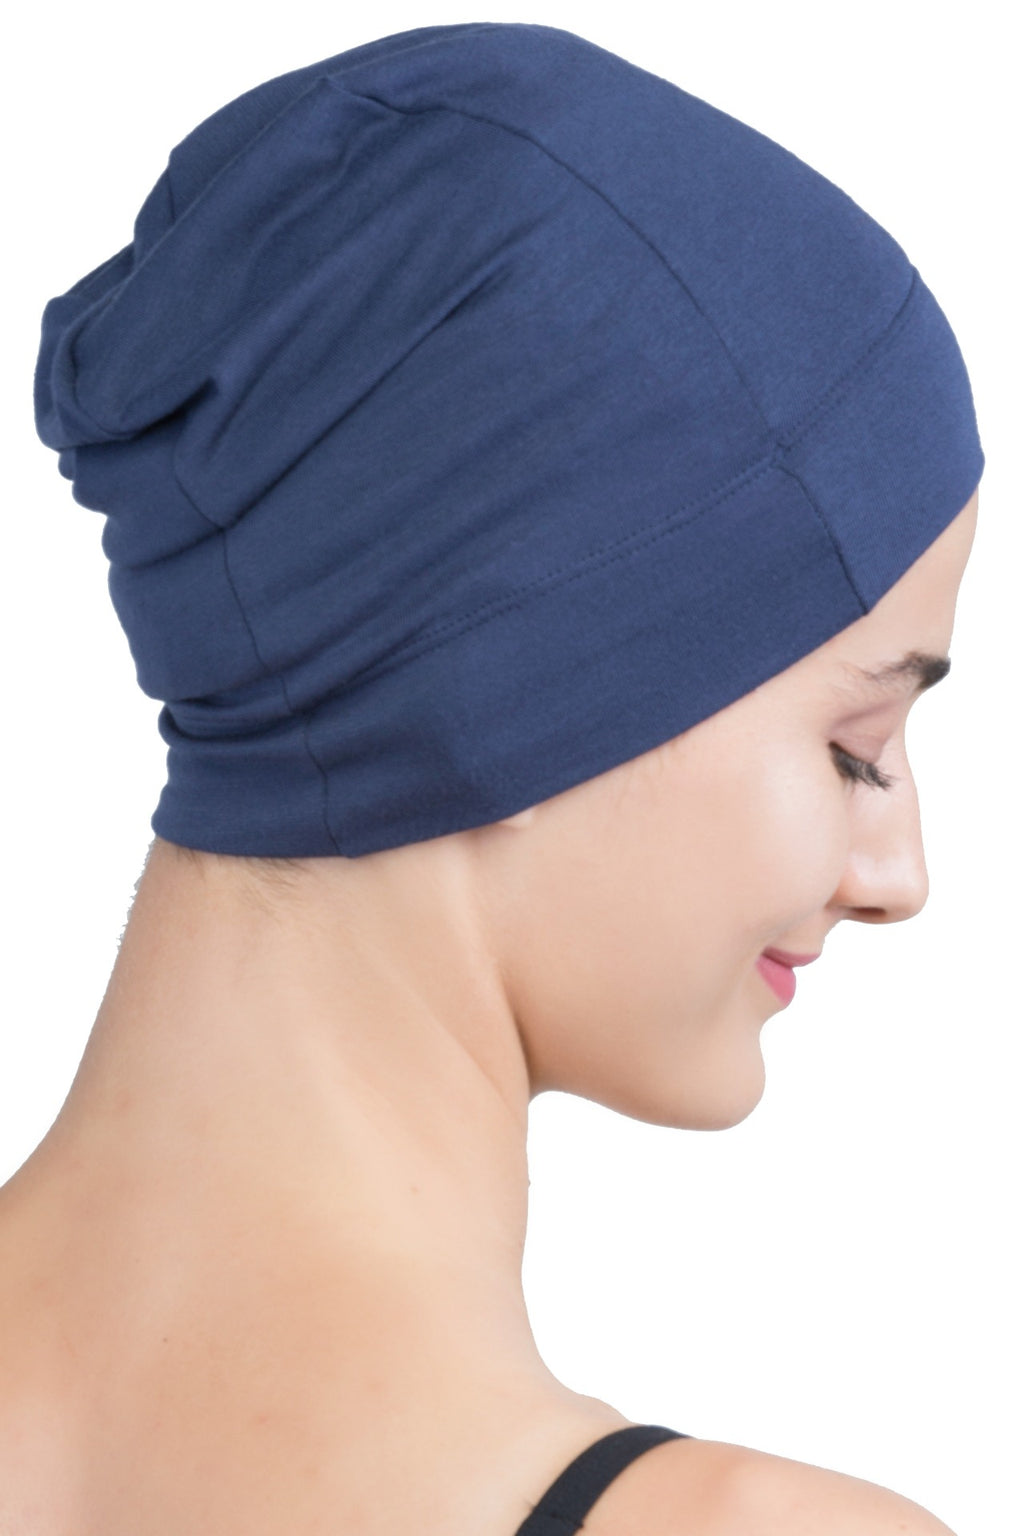 Snug Fit Sleep Cap - Denim